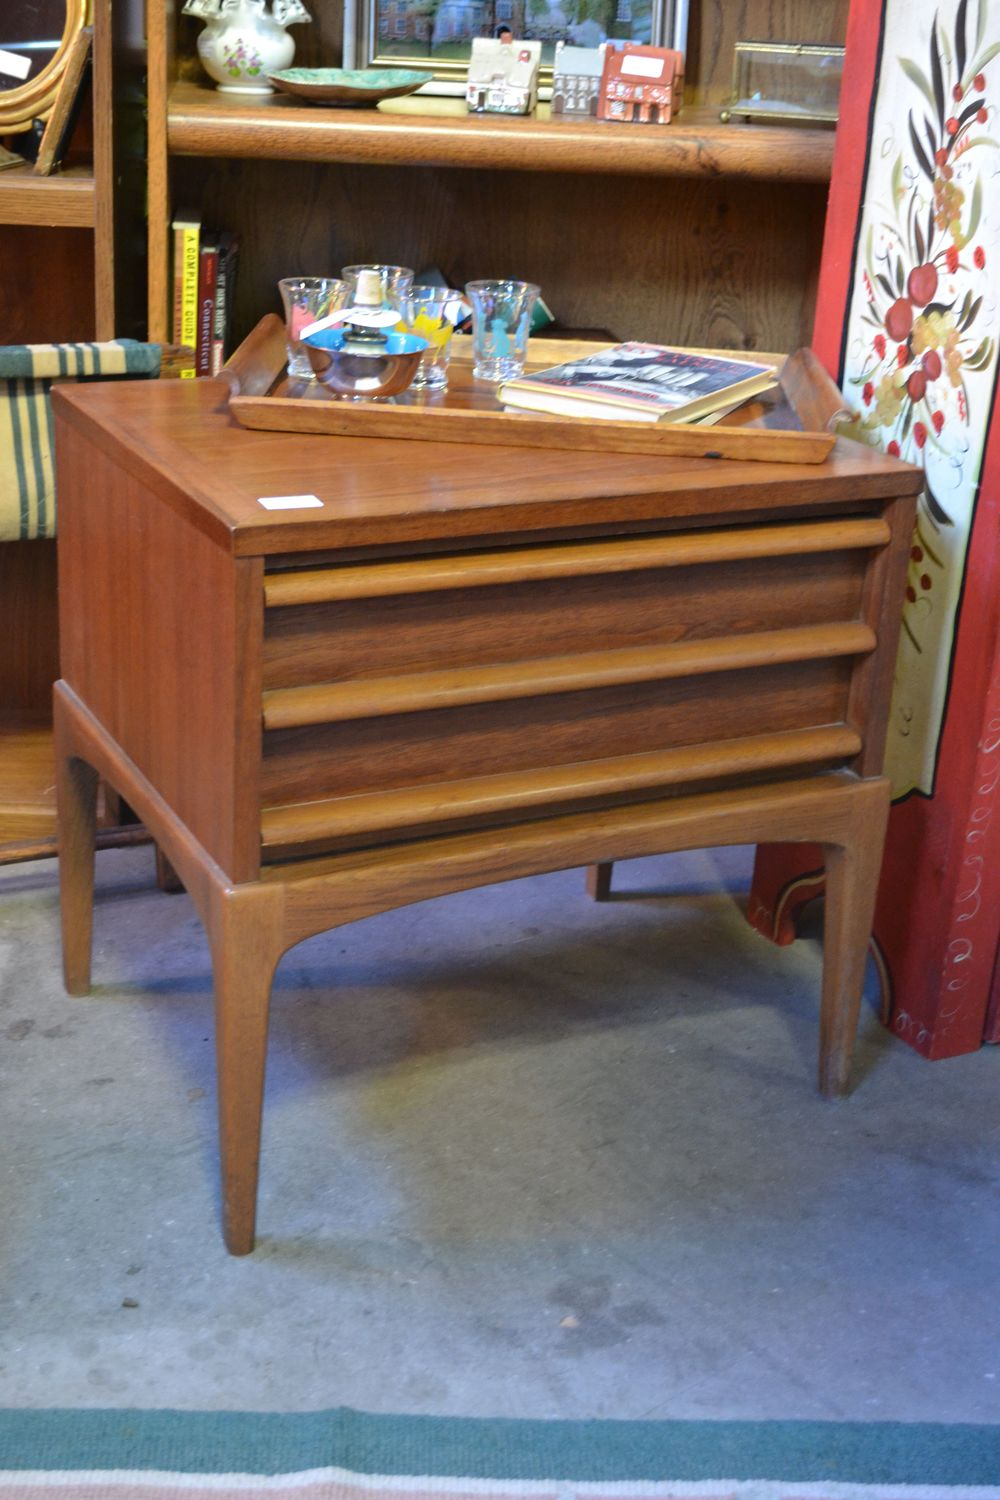 love finding mid-century pieces in perfect condition!